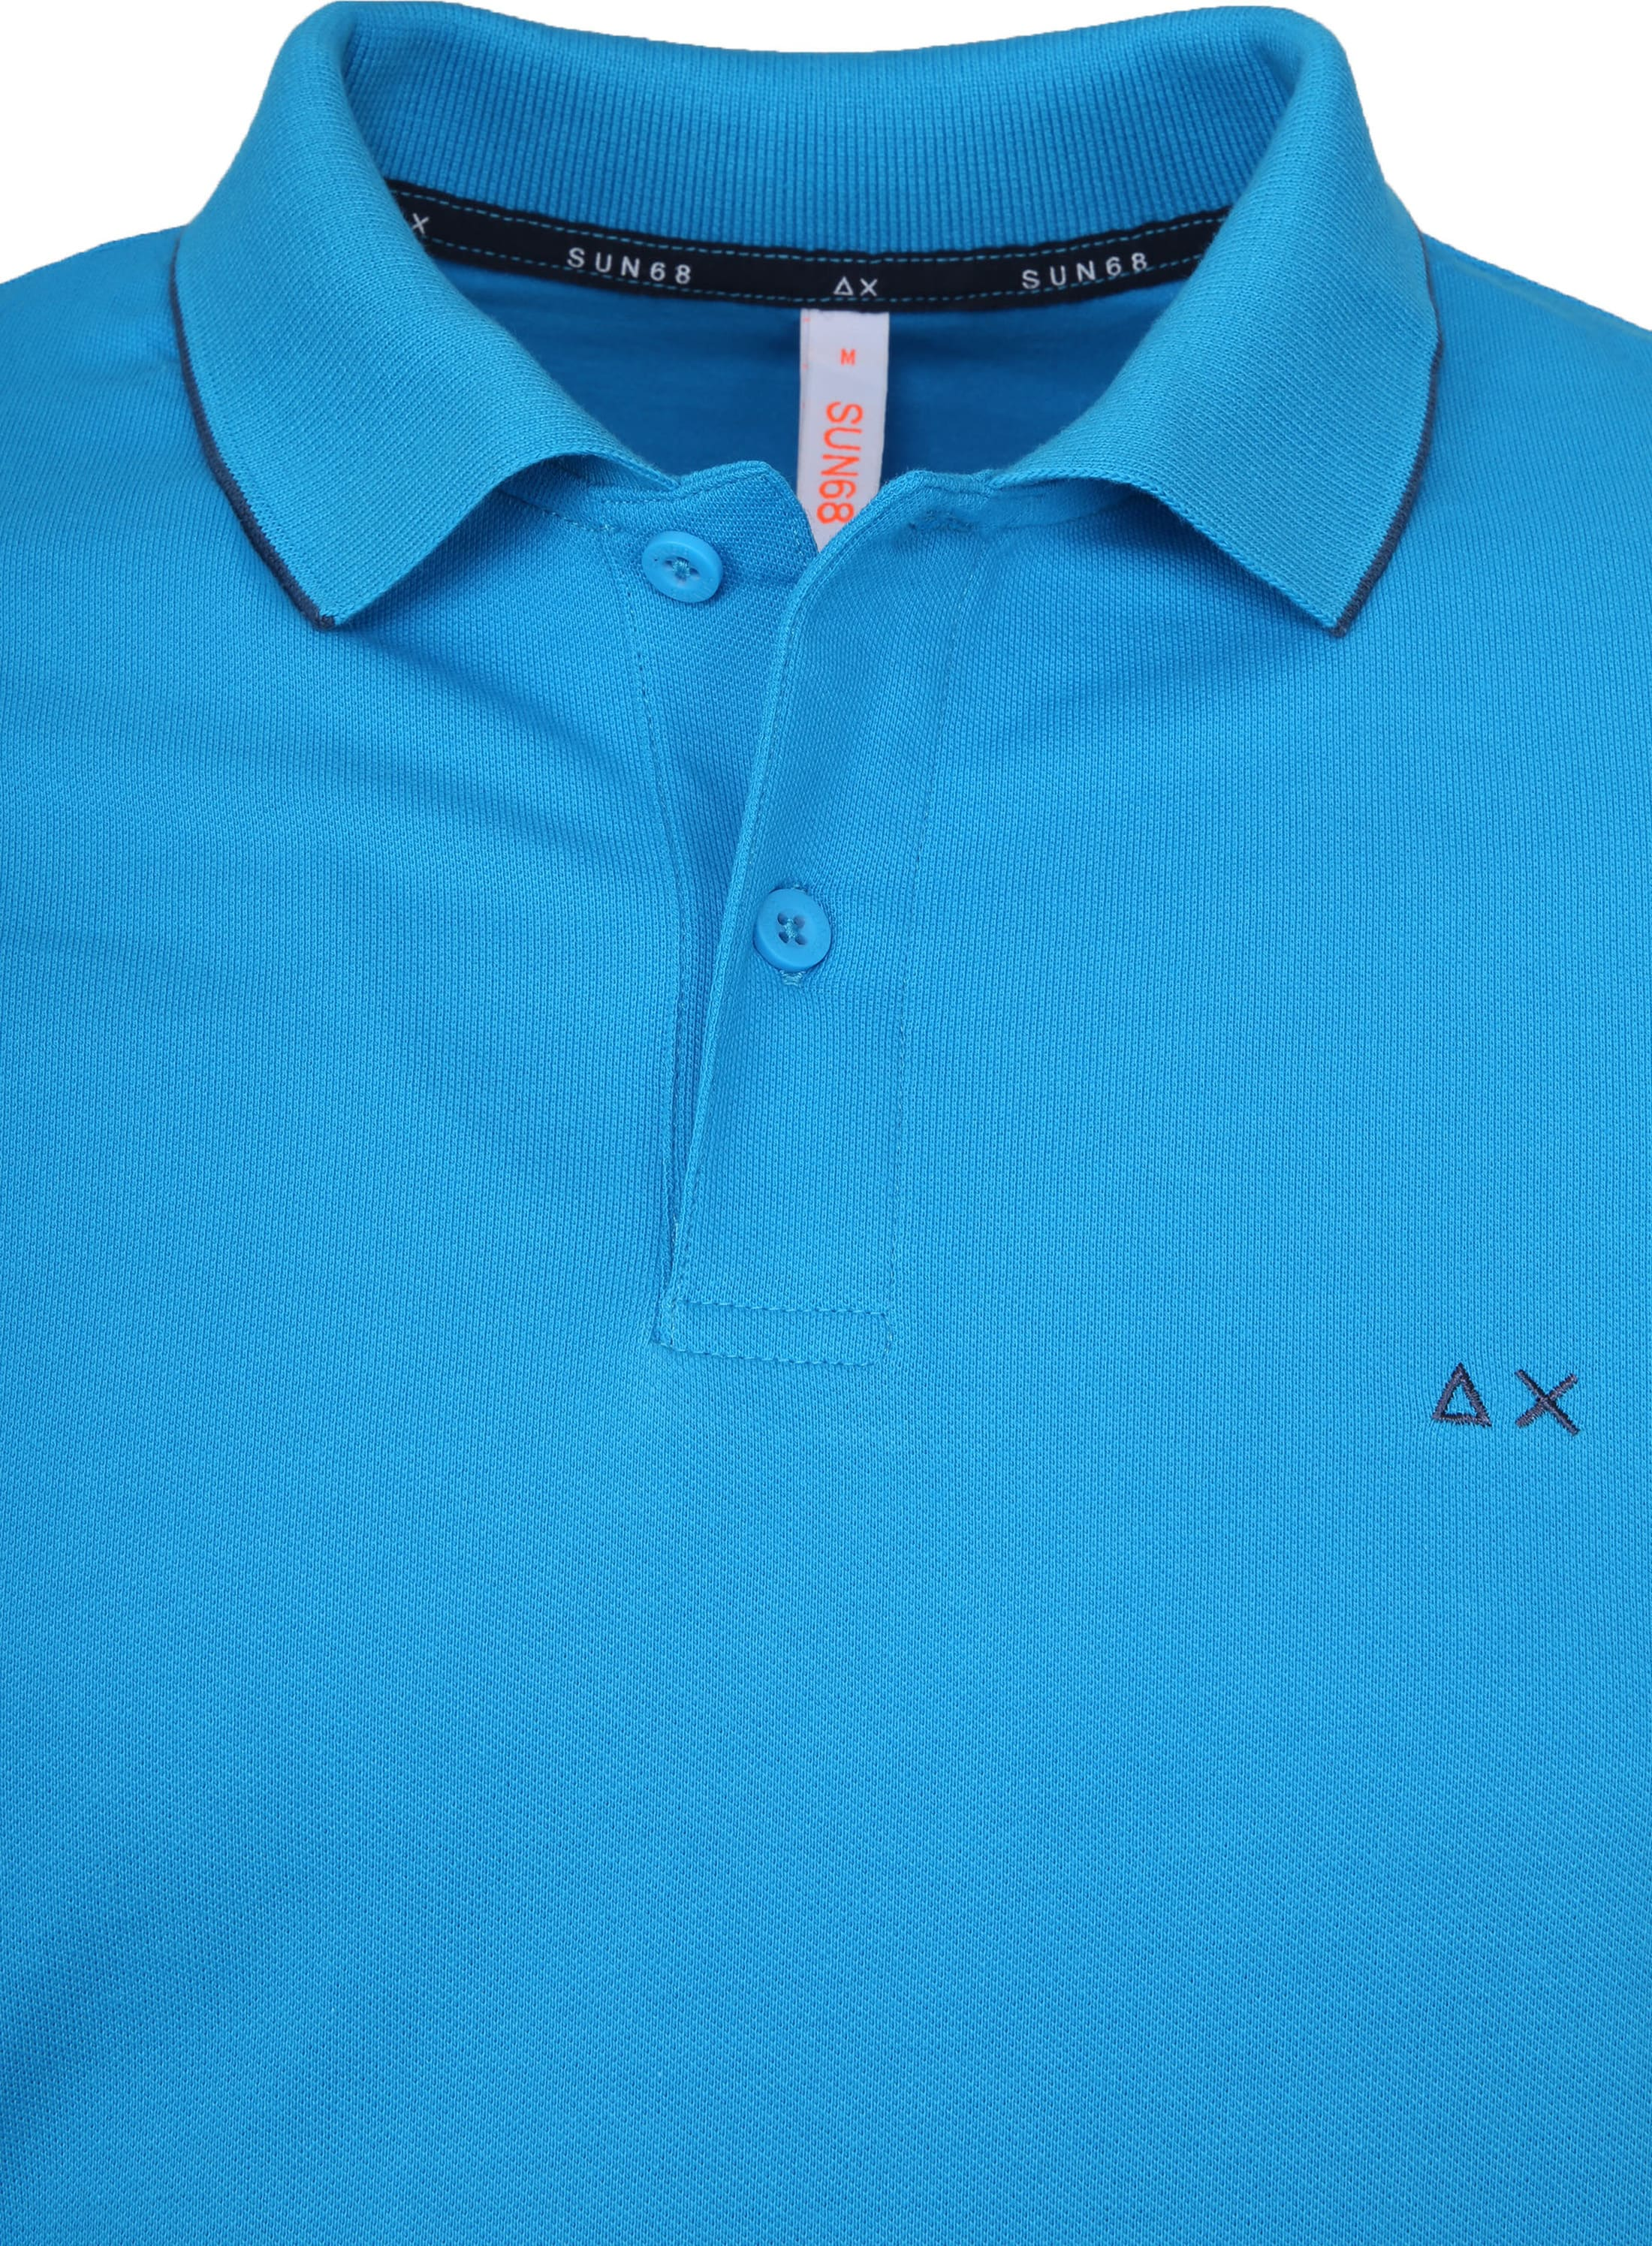 Sun68 Poloshirt Small Stripe Blue SF foto 1